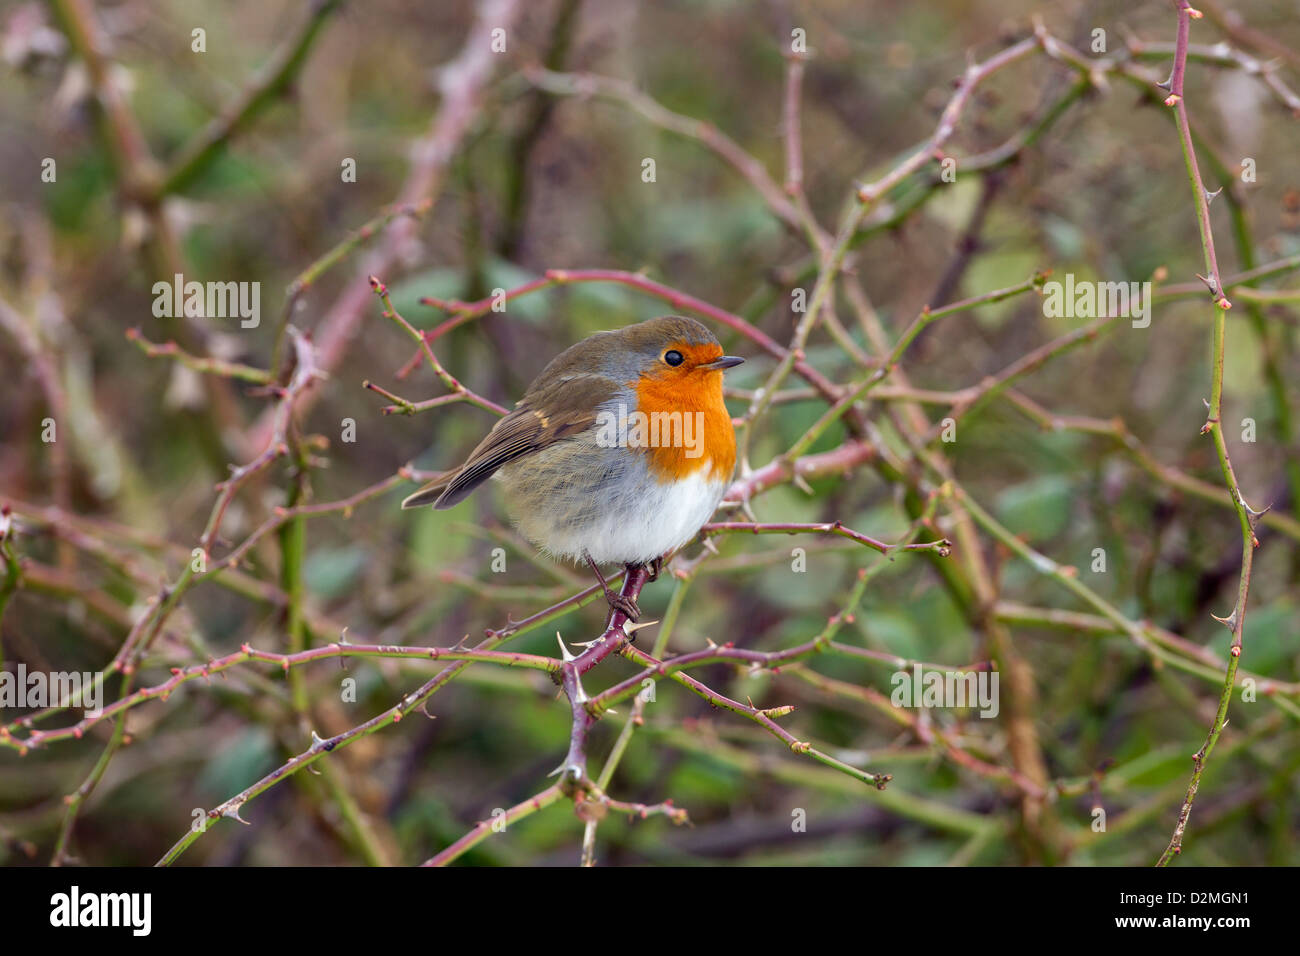 Robin Erithacus rubecula on branch in Hedgerow Stock Photo